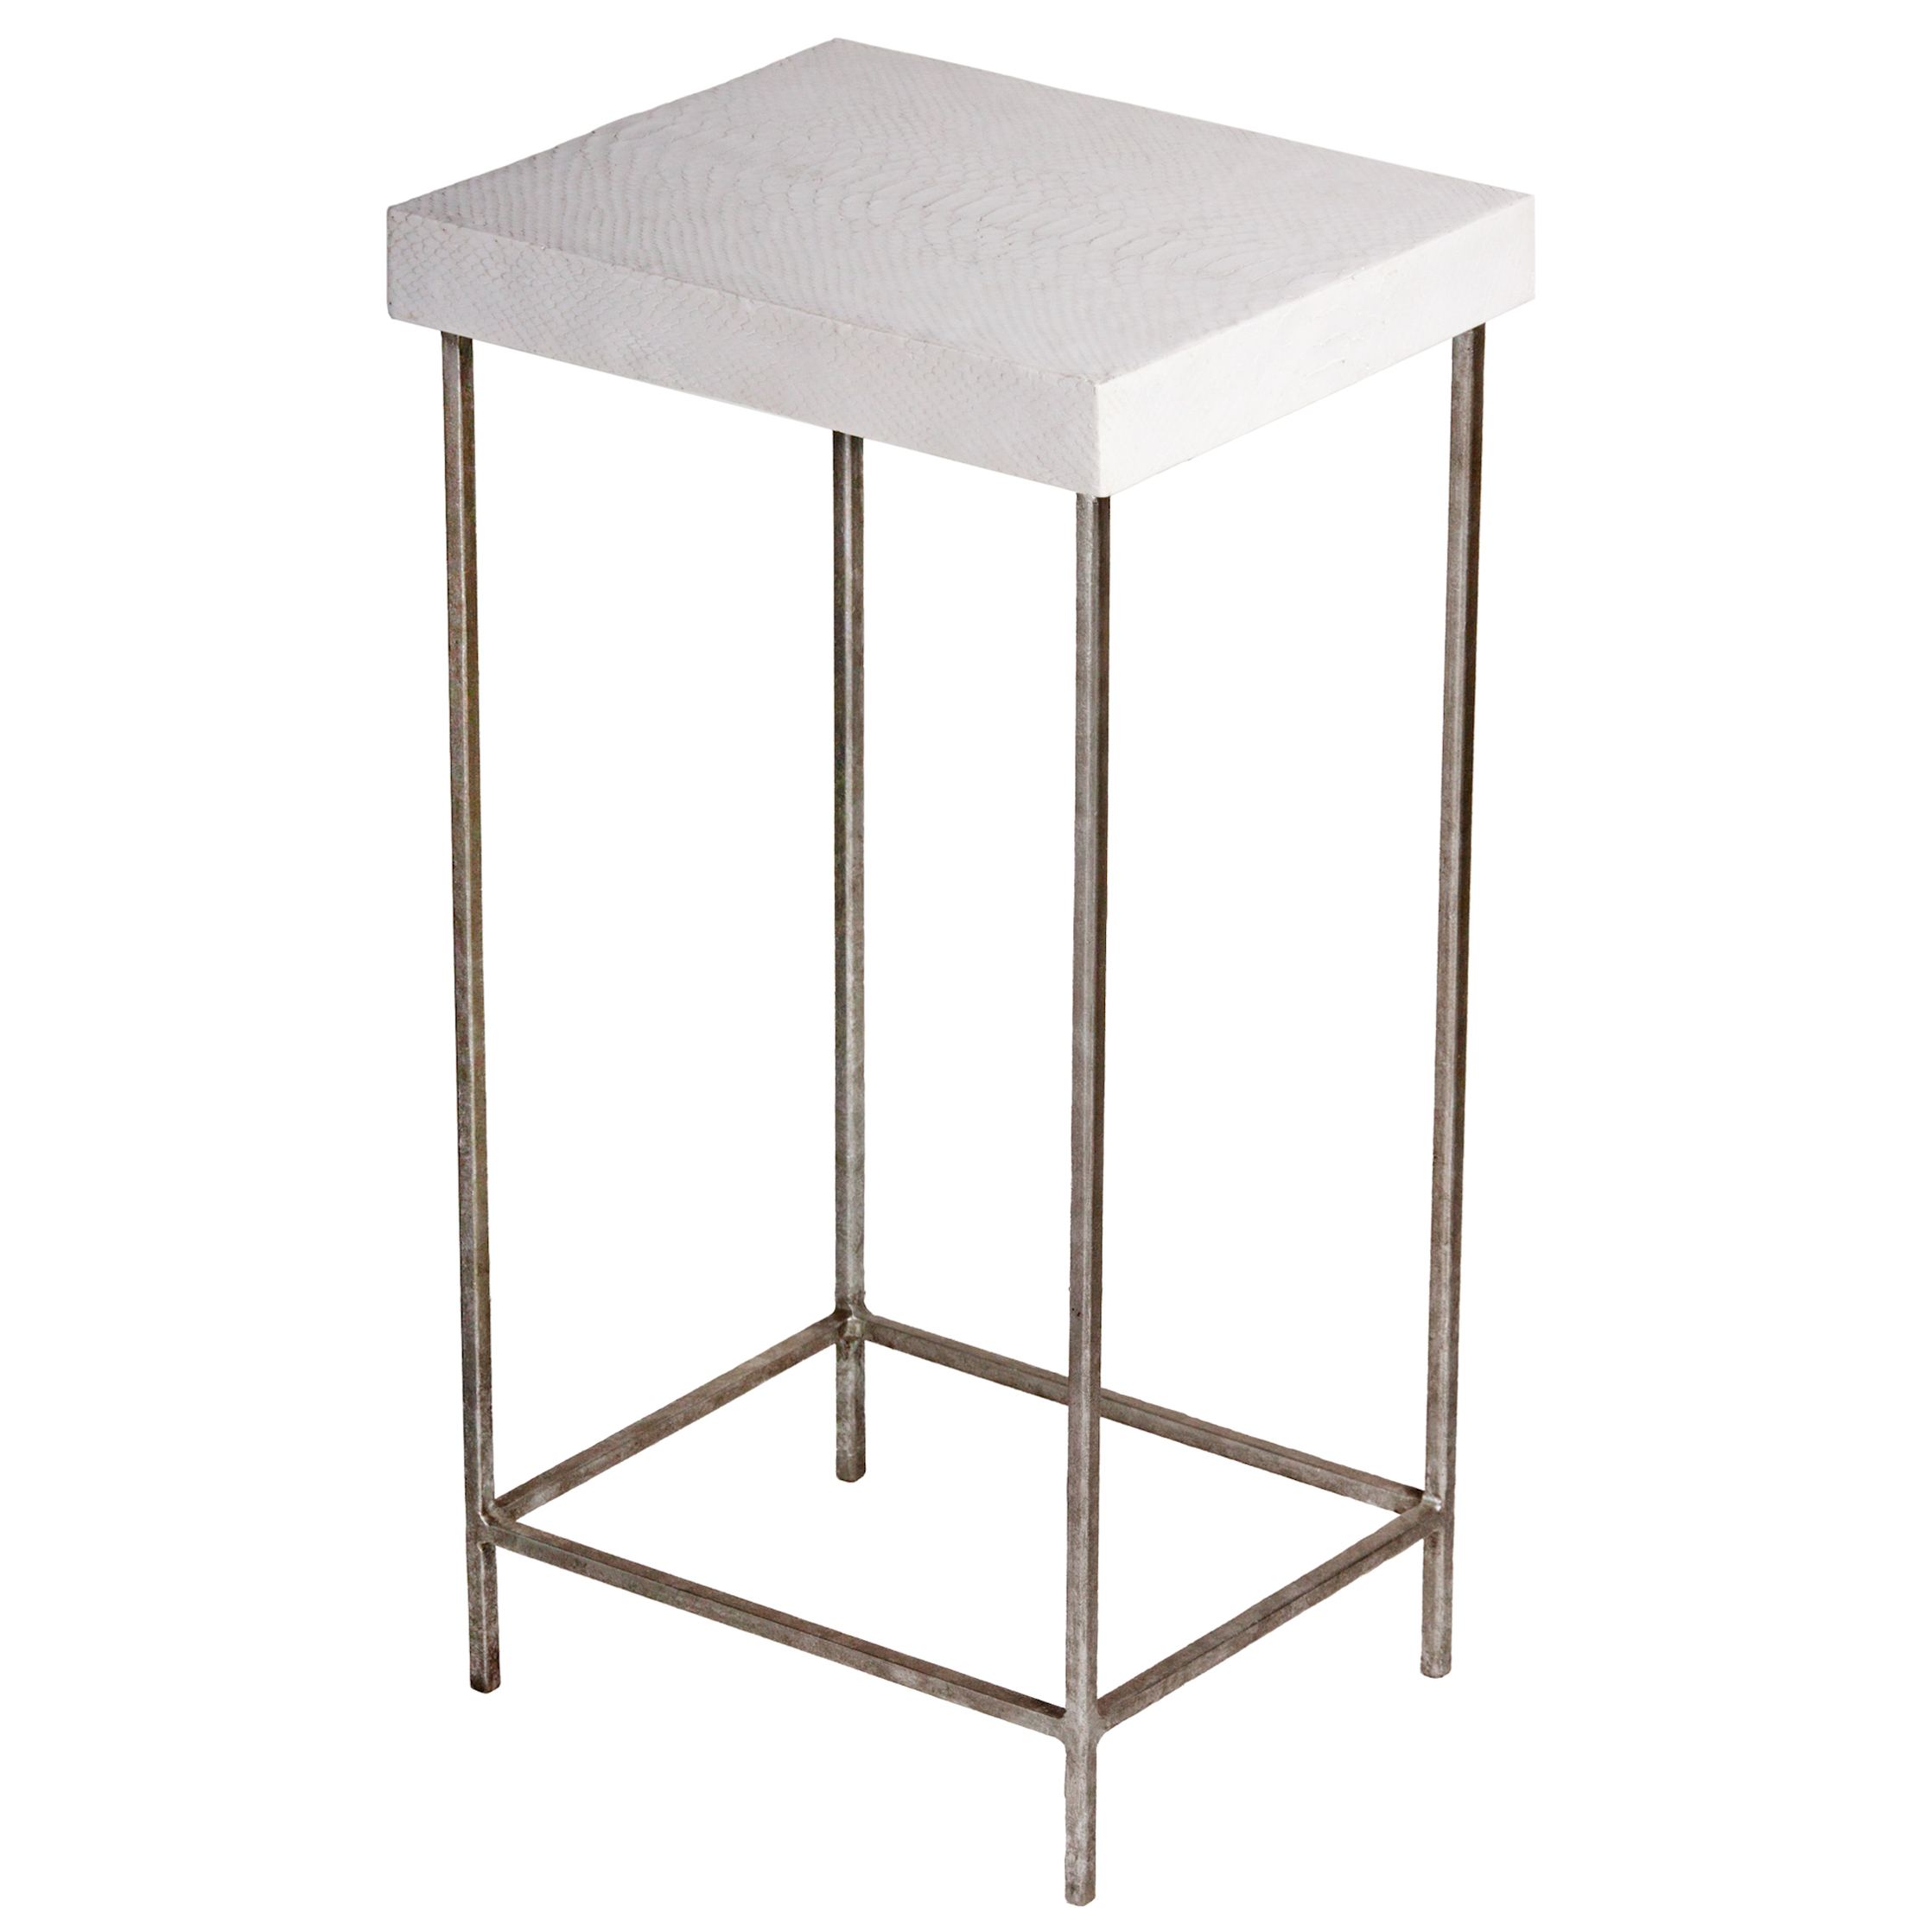 Oly Baby George Faux White Snakeskin Silver End Table